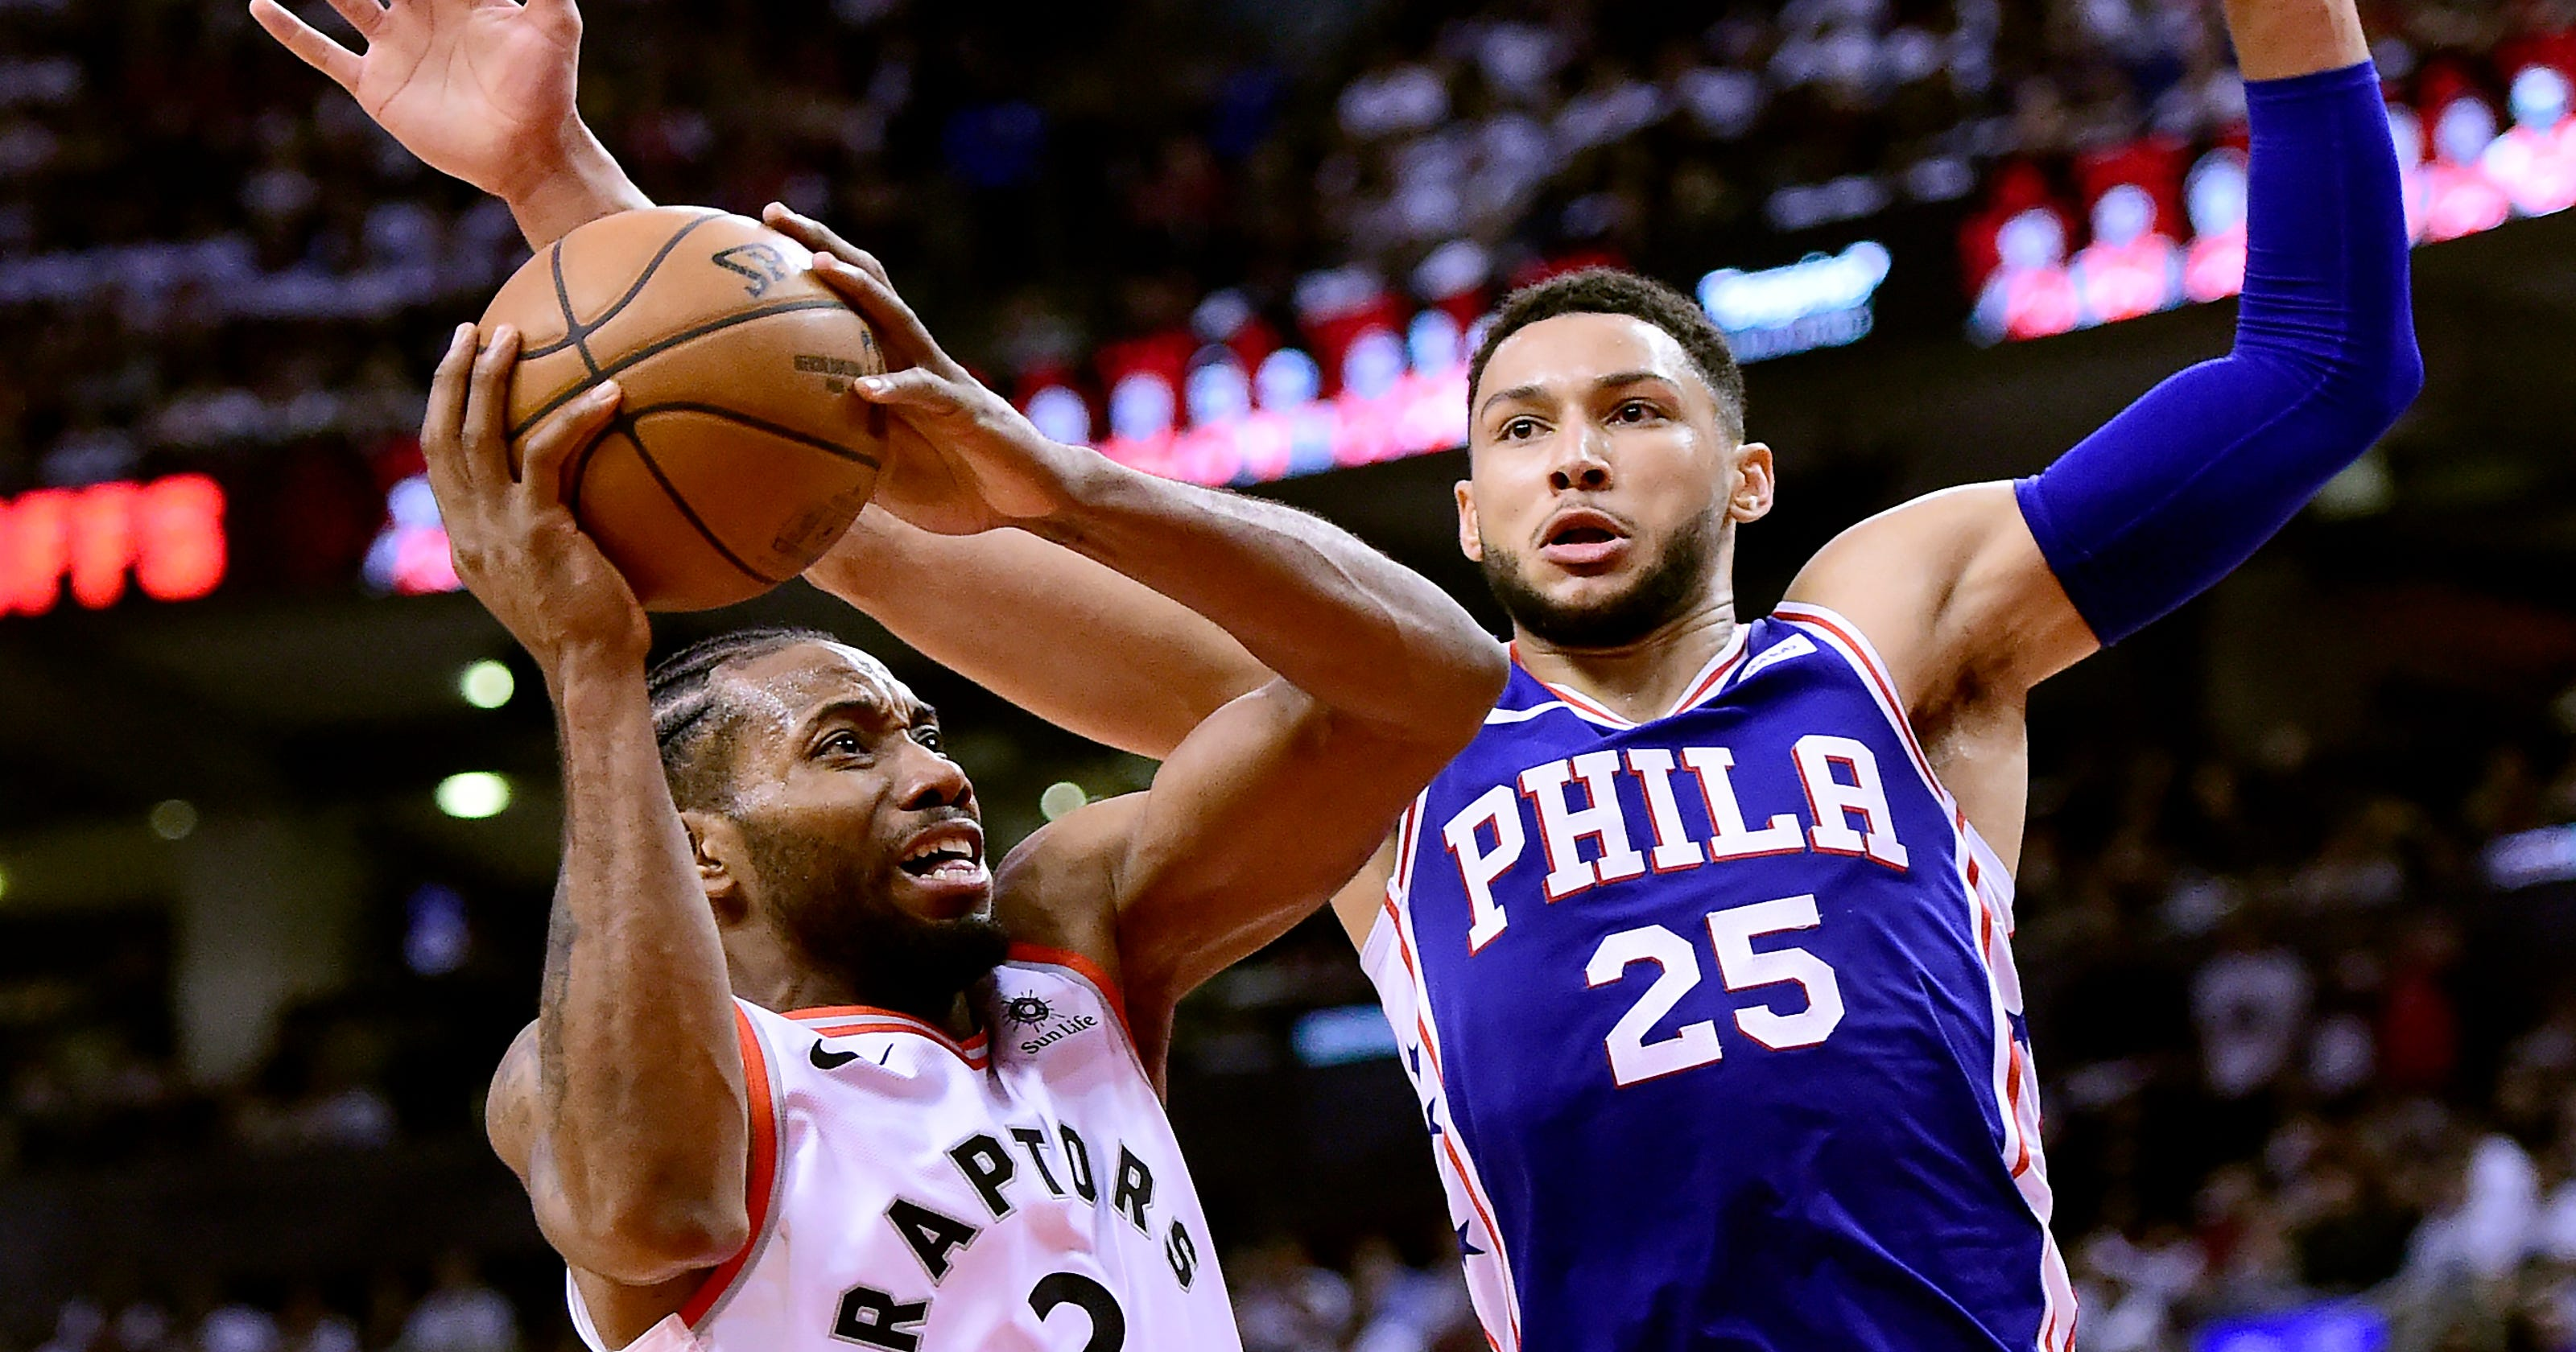 Five keys to a 76ers win over the Raptors Thursday in Game 3